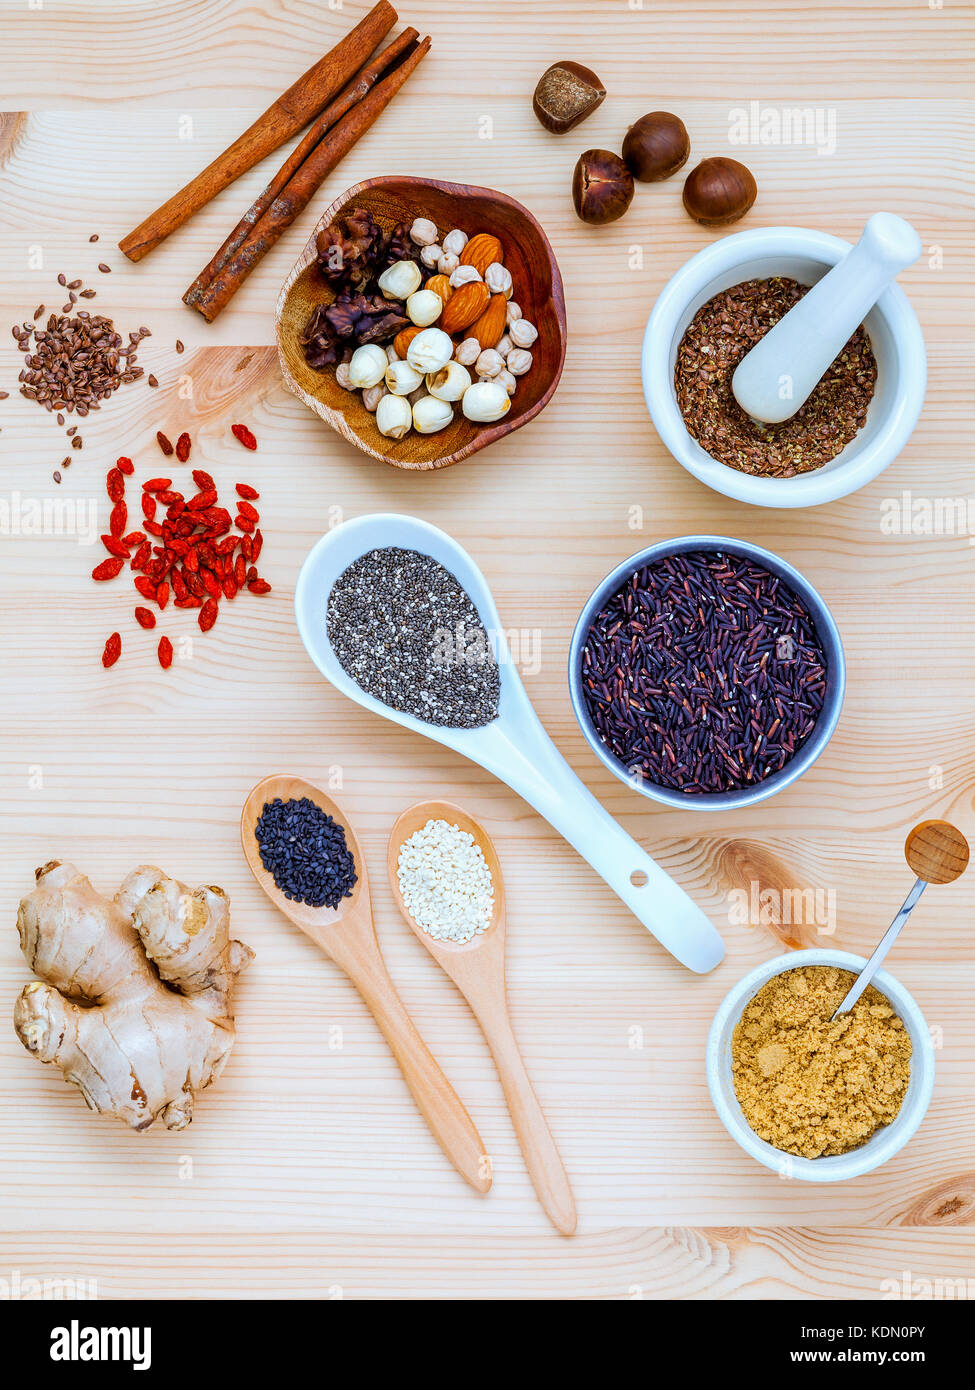 Nutritious Foods and Super foods selection with supplement powders in mortar and spoons setup on wooden background. - Stock Image